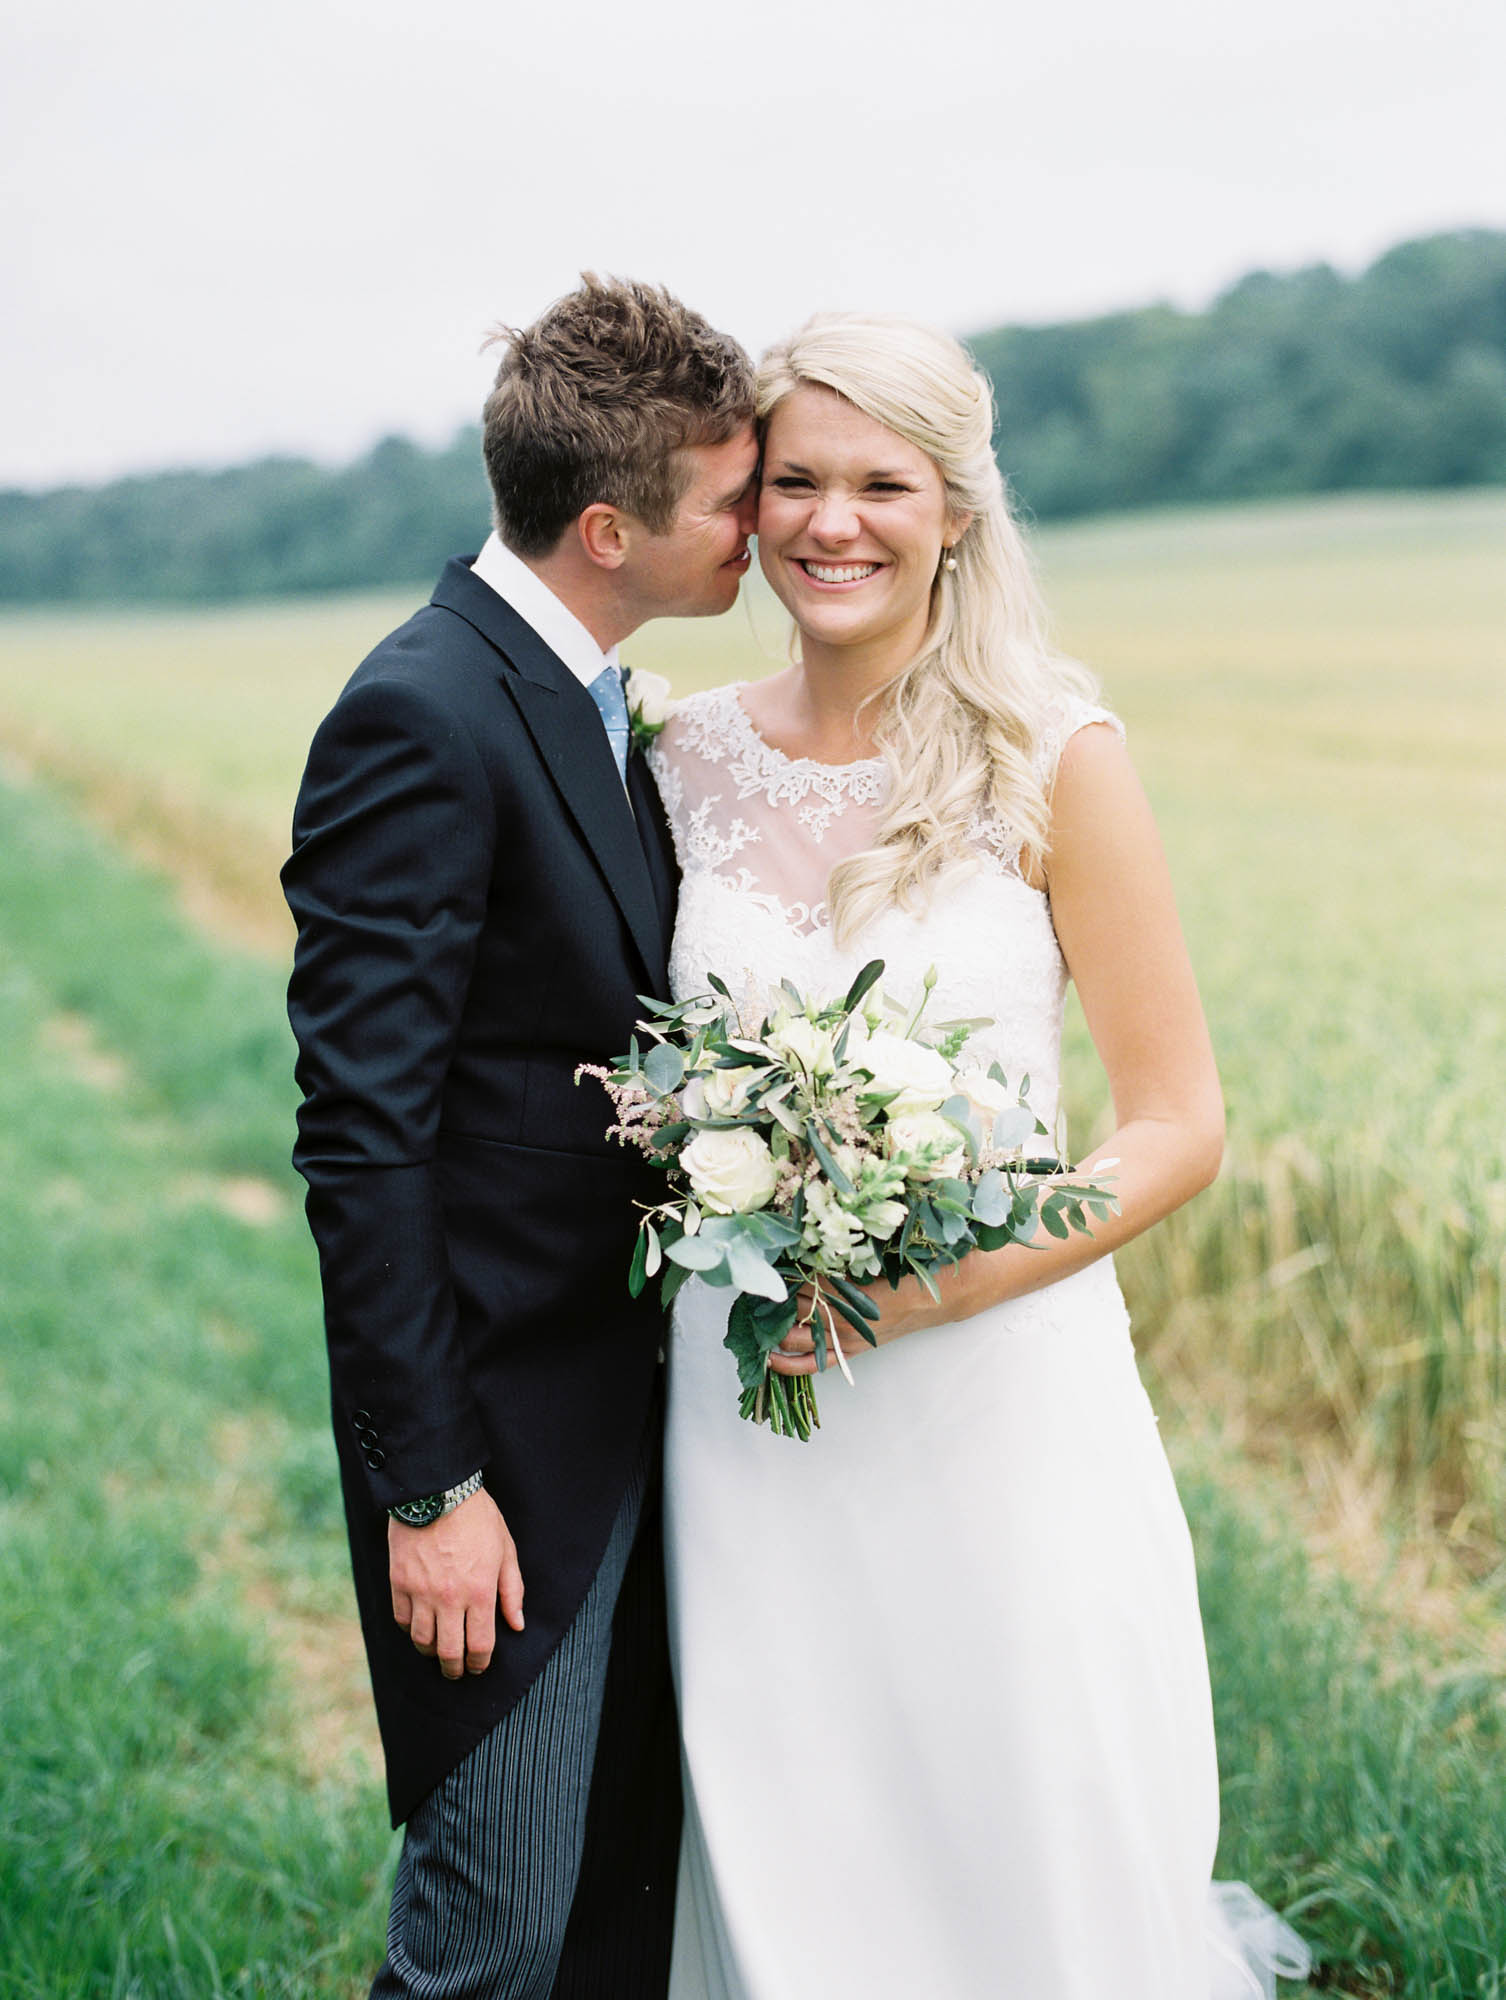 Natural laughter of bride and groom in wheat field captured by luxury film wedding photographer Camilla Arnhold